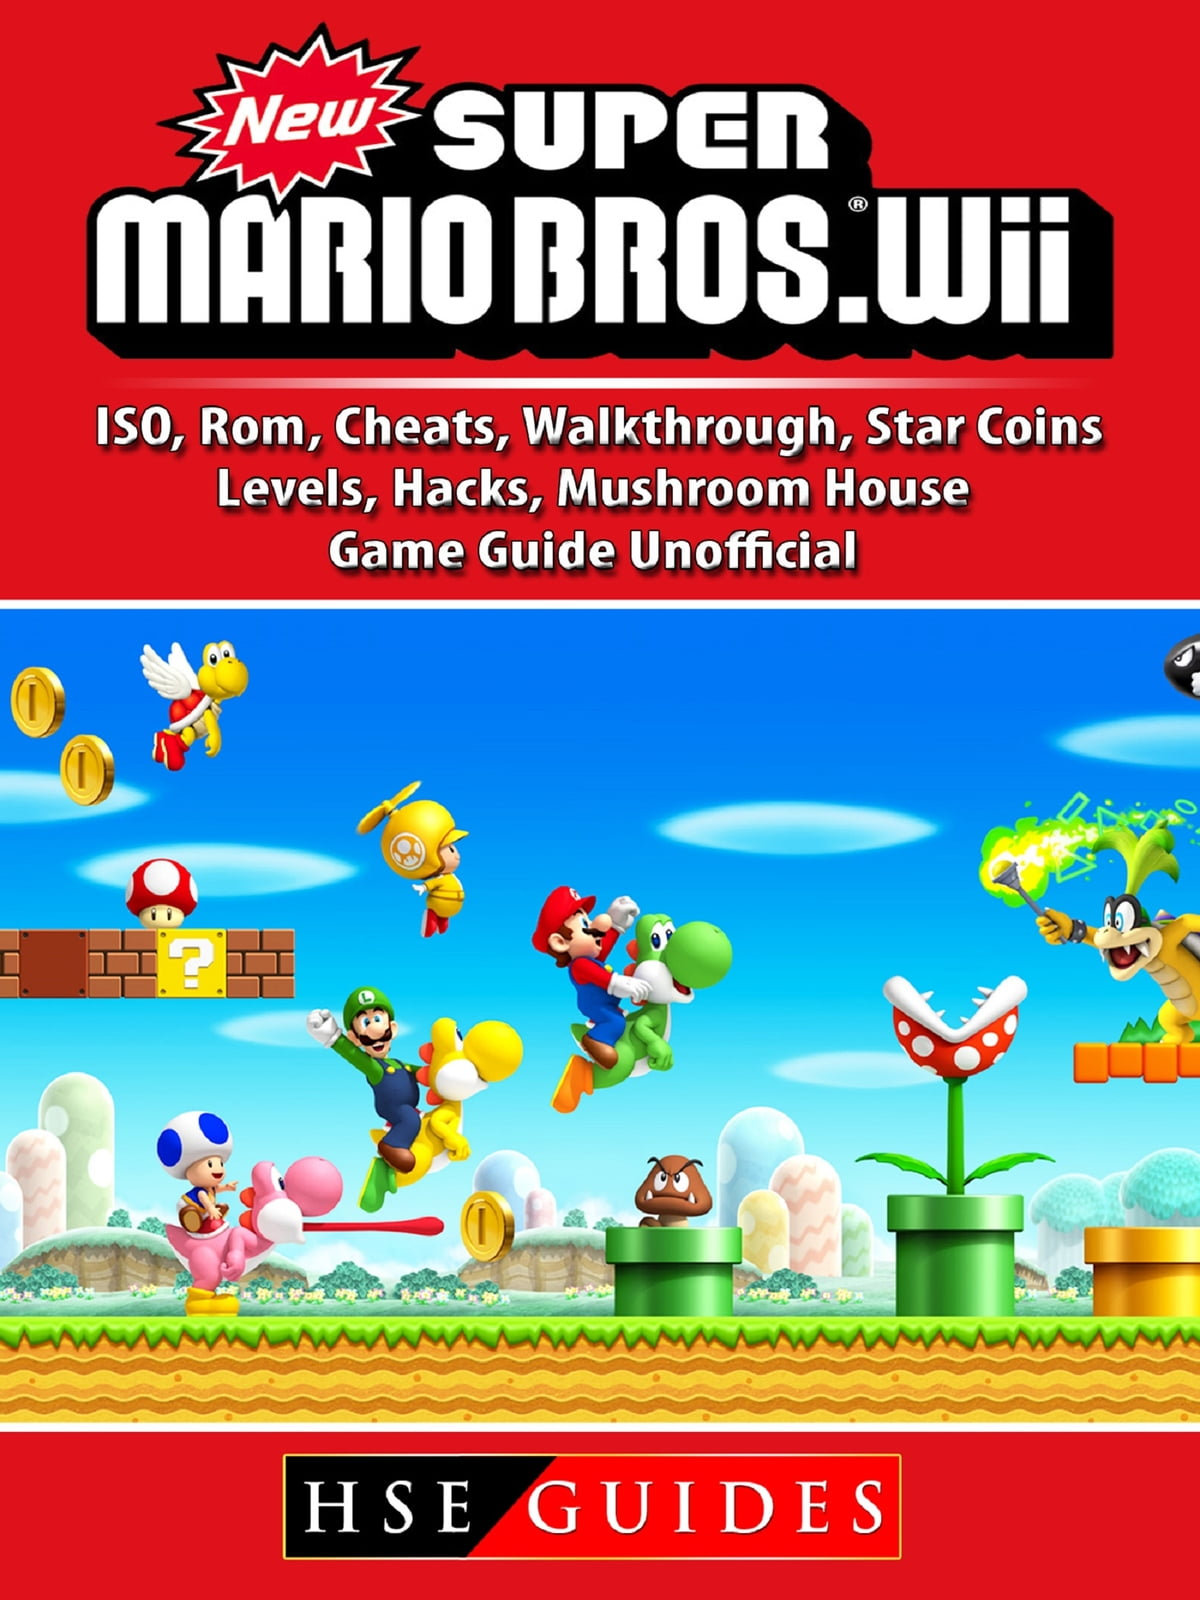 New Super Mario Bros Wii, ISO, Rom, Cheats, Walkthrough, Star Coins,  Levels, Hacks, Mushroom House, Game Guide Unofficial ebook by Hse Guides -